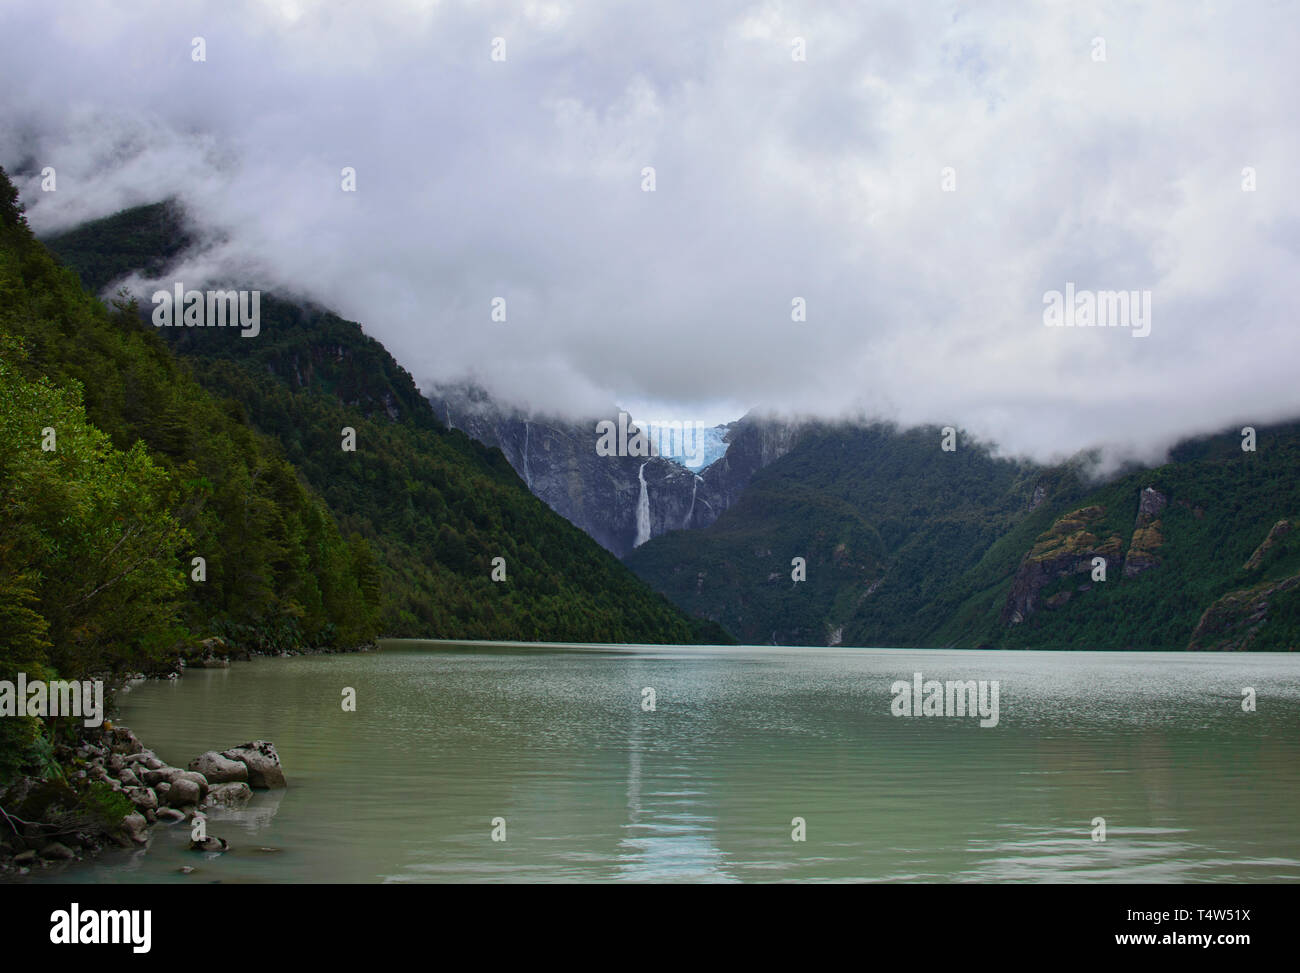 Ventisquero Colgante hanging glacier in Queulat National Park, Patagonia, Aysen, Chile - Stock Image